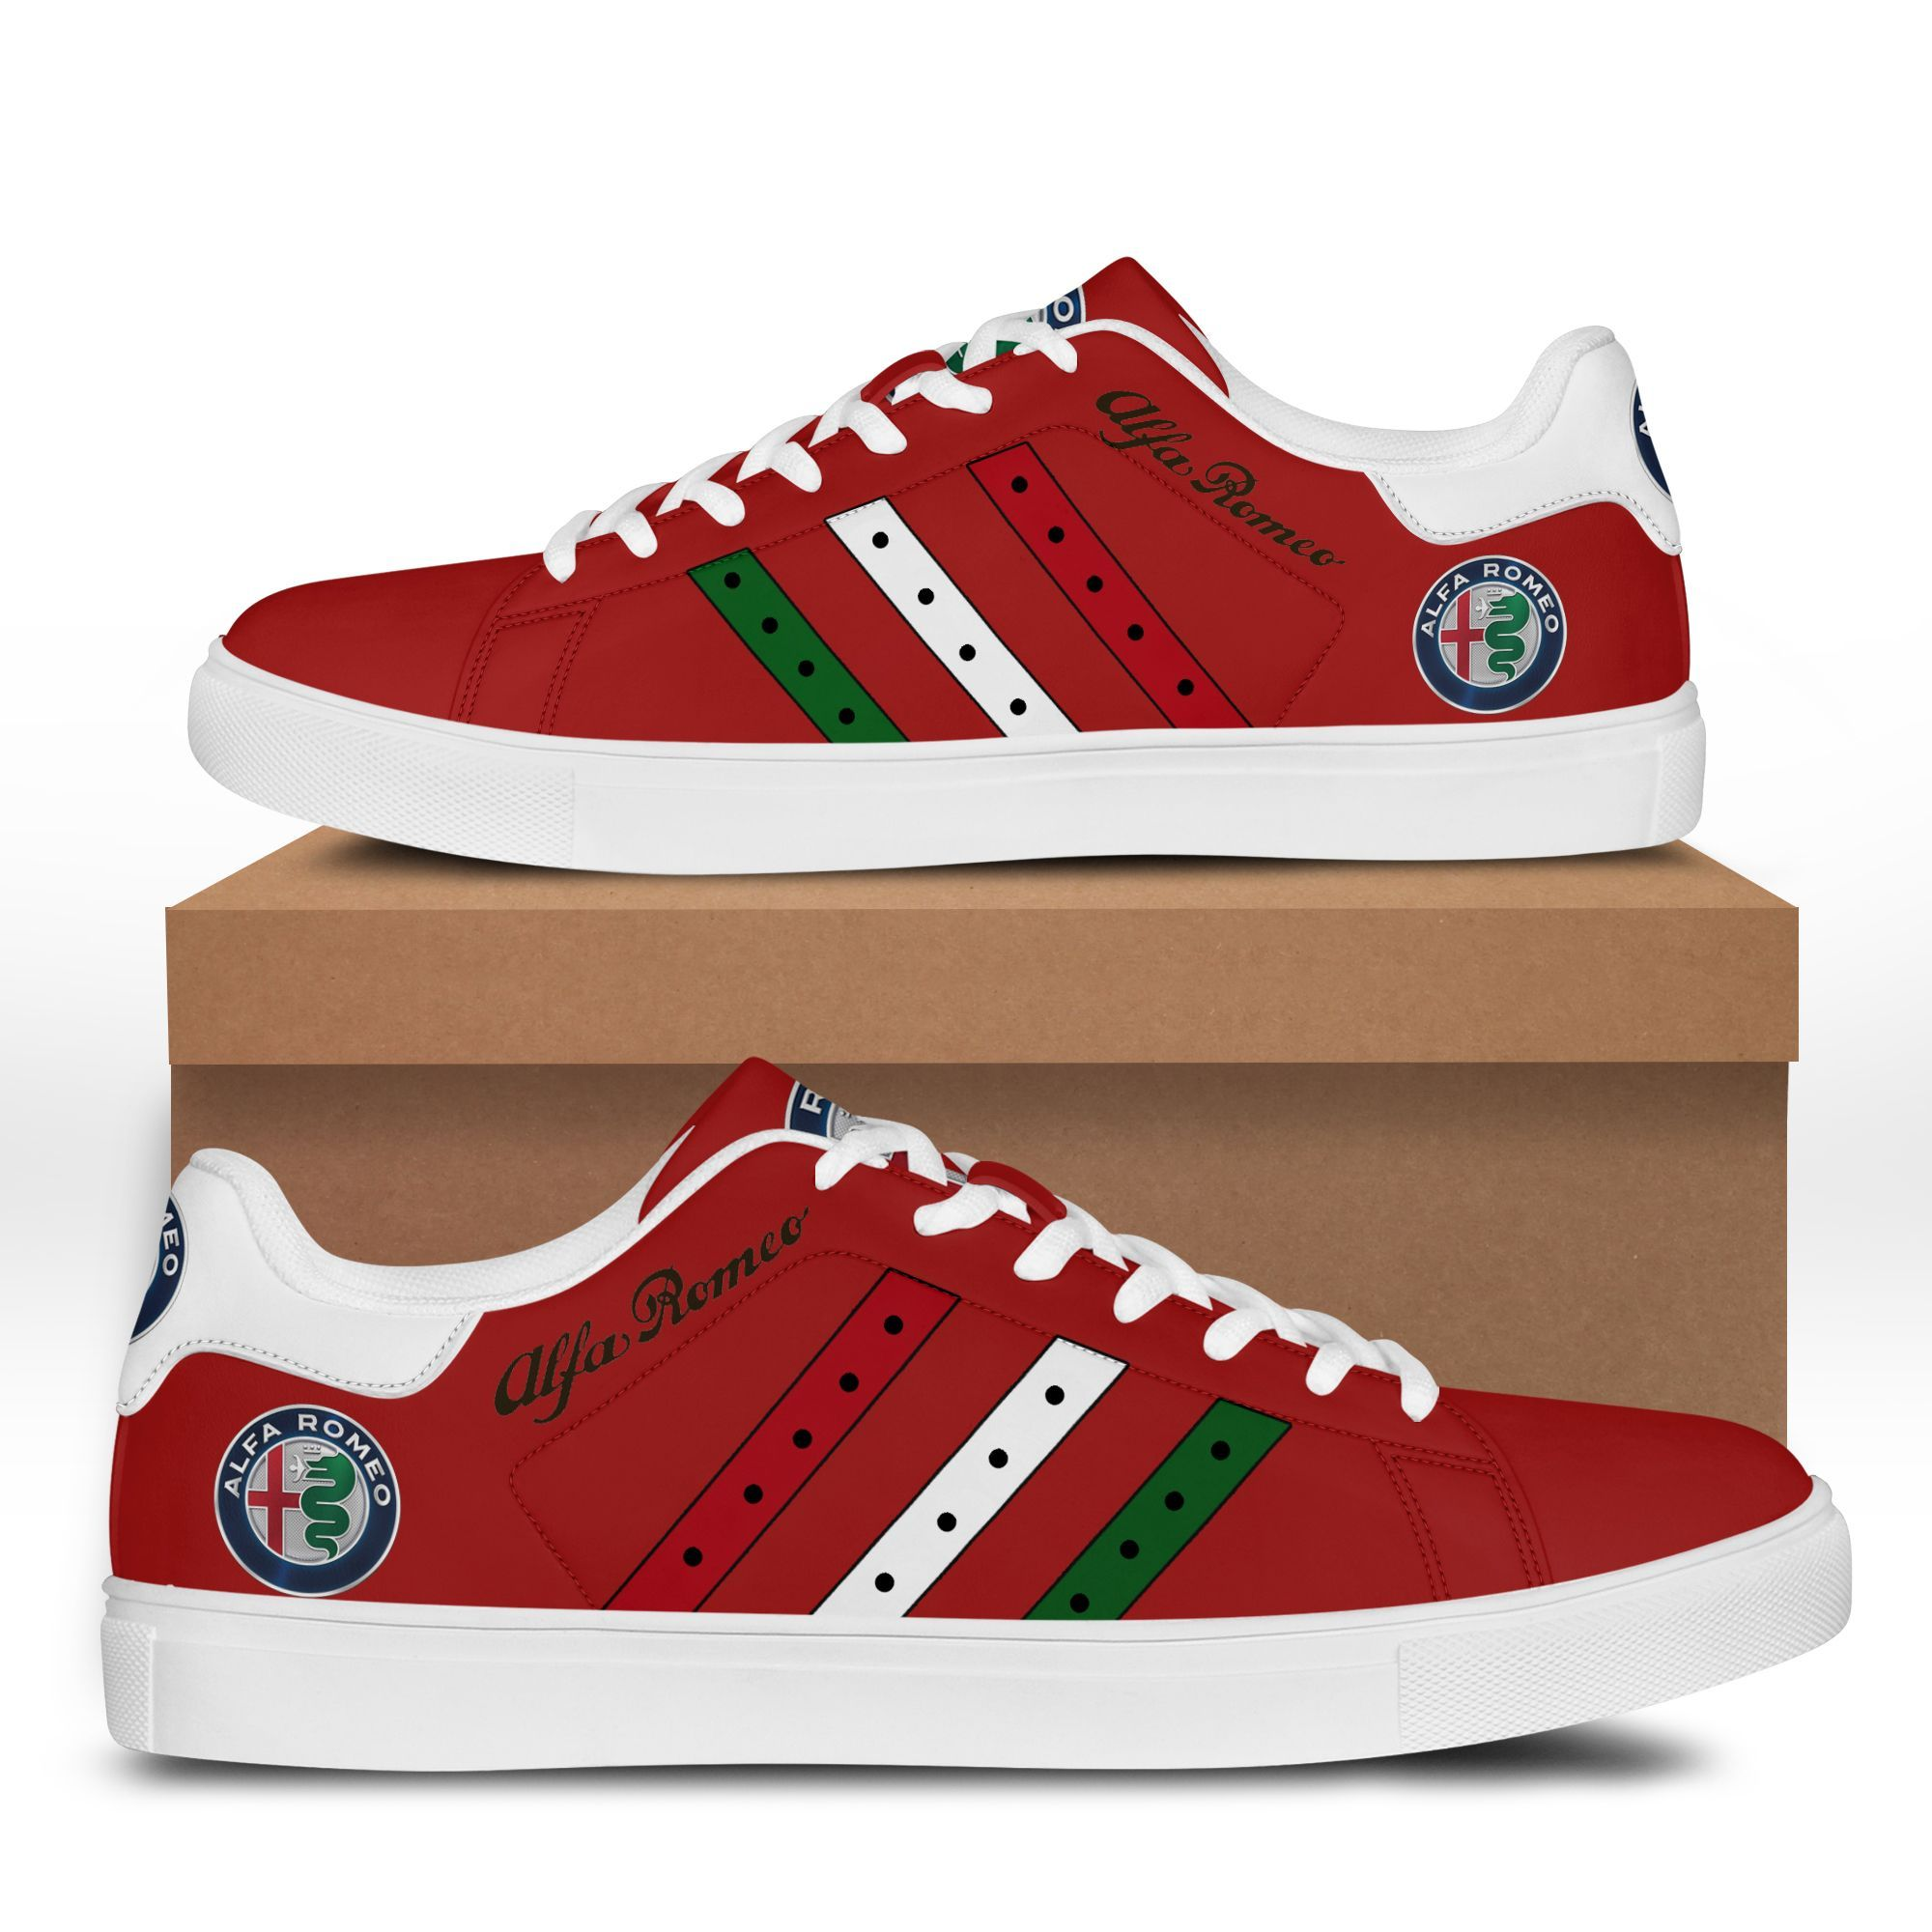 Alfa Romeo Color Stripe Lines in Red Stan Smith Shoes